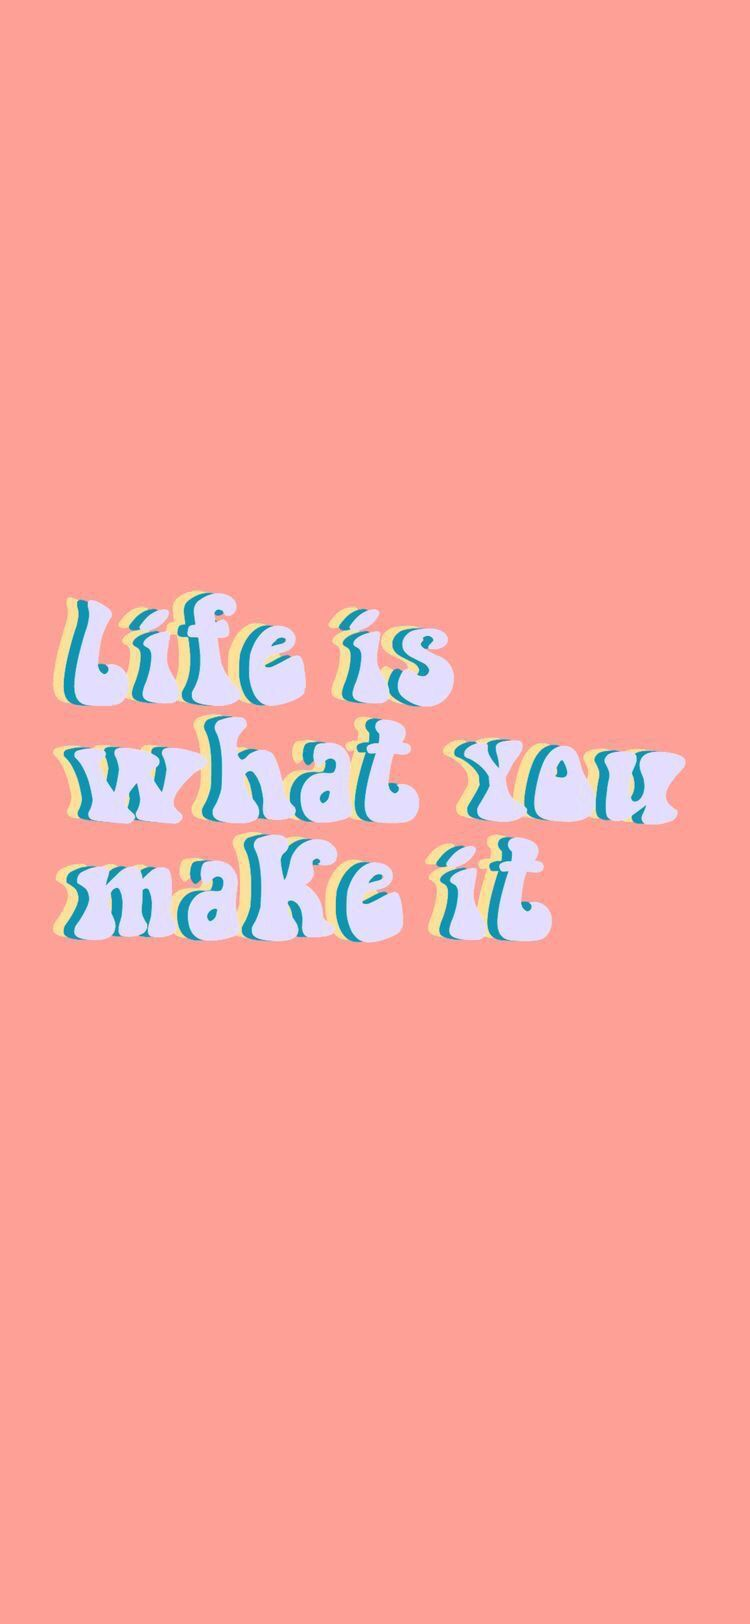 Vsco Quotes Sayings Life Quotes Vsco Sayings Words Wallpaper Wallpaper Quotes Cute Quotes